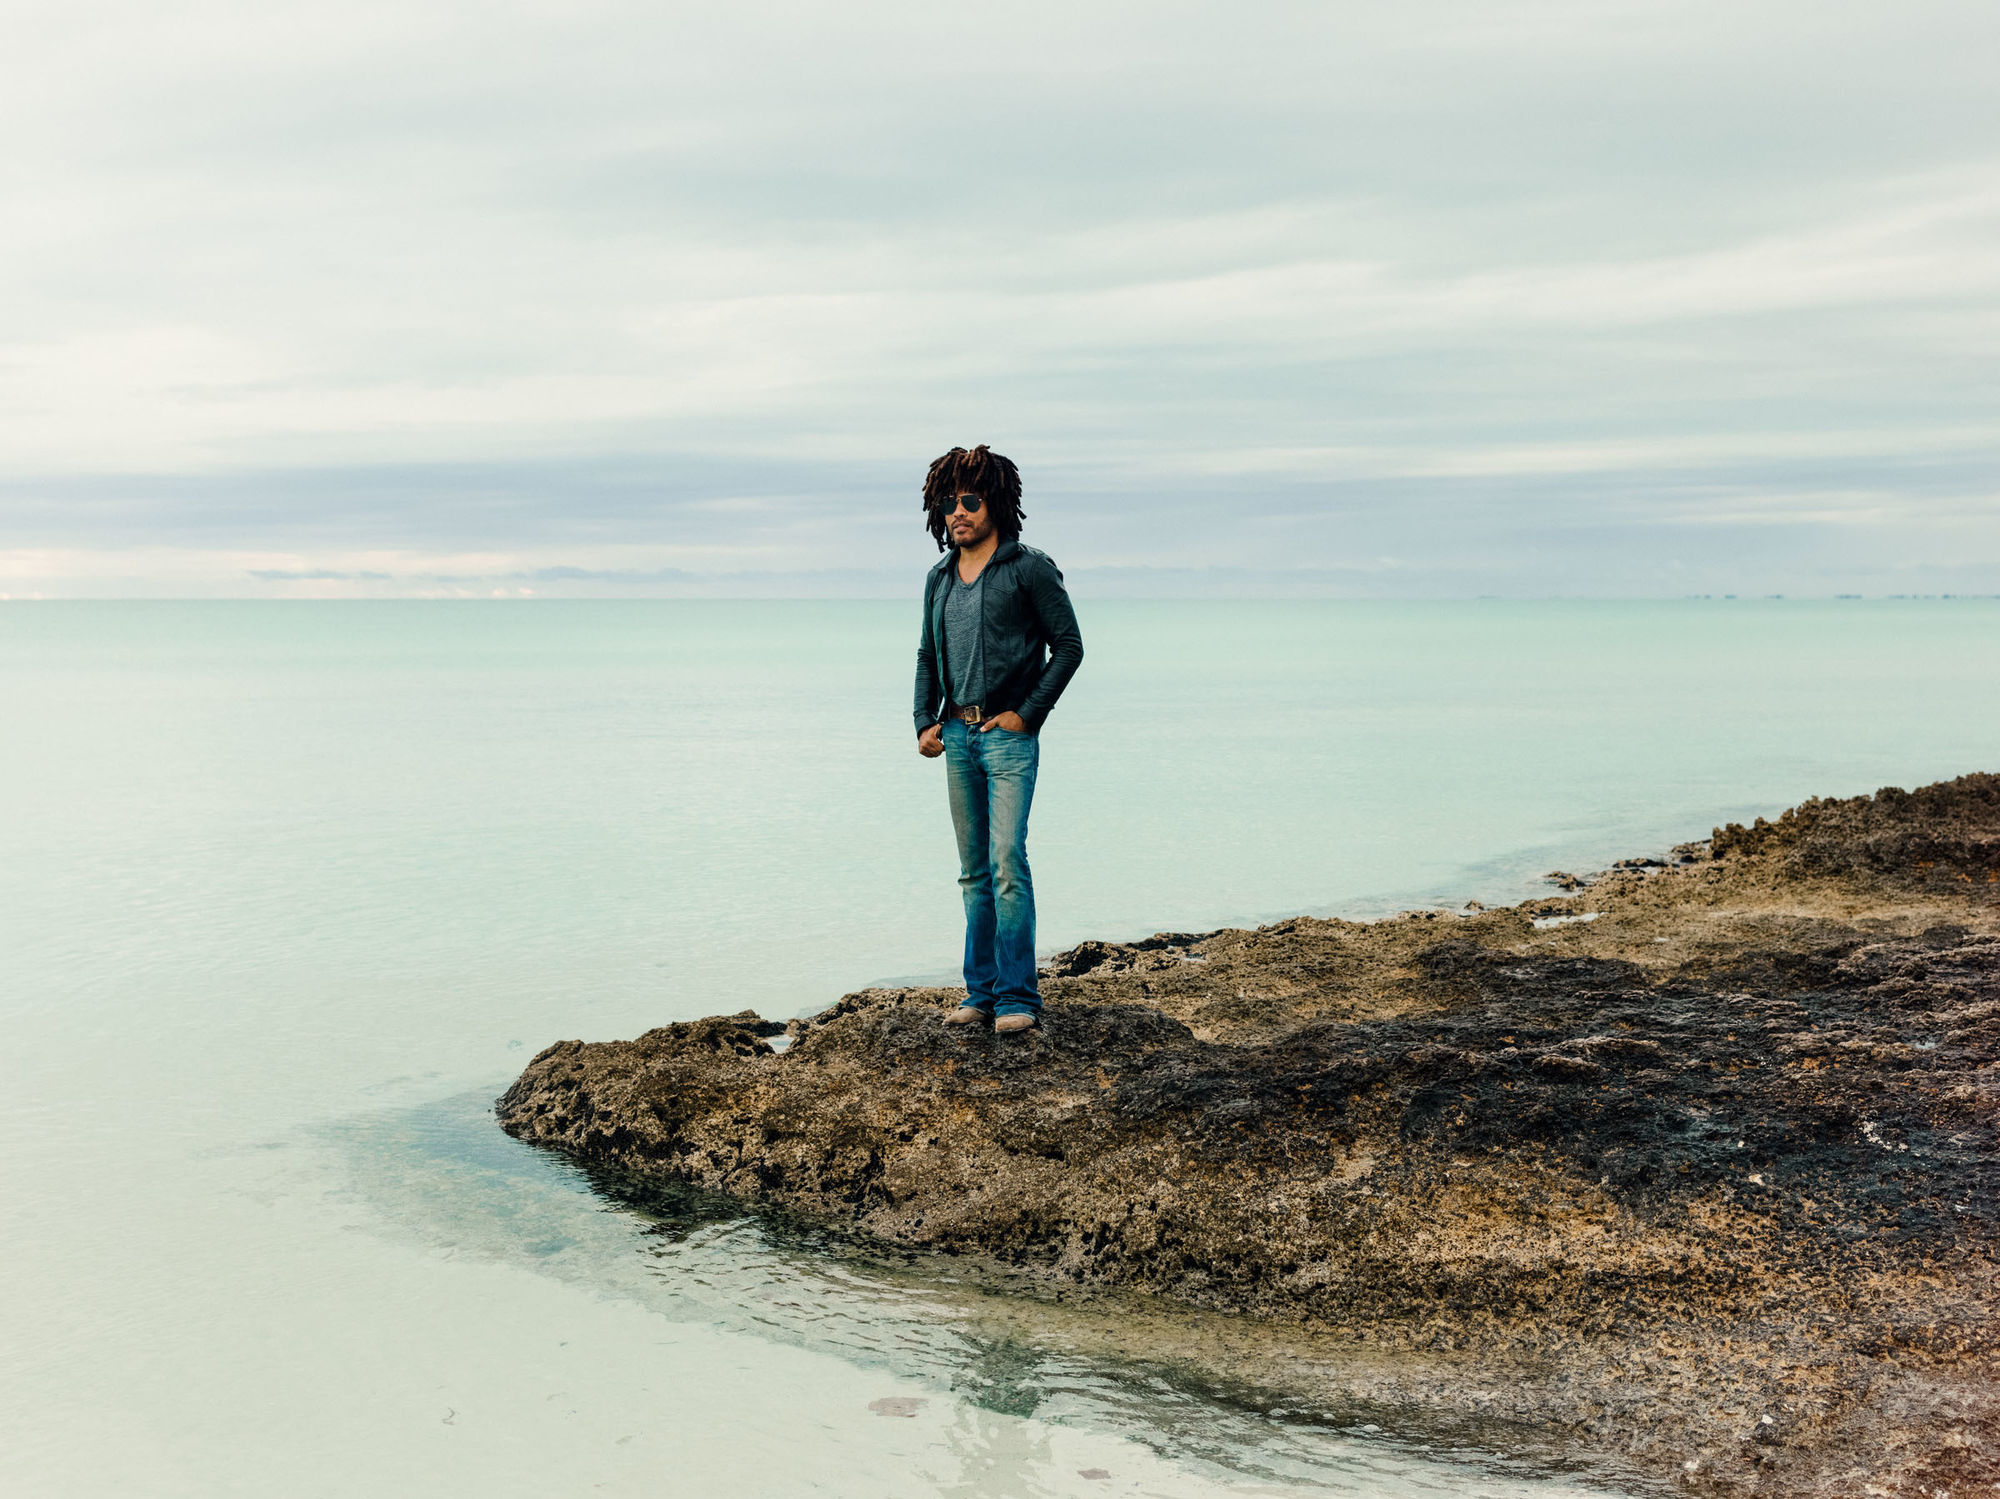 João Canziani c/o GIANT ARTISTS photographed musician Lenny Kravitz at his home recording studio on the rural Bahamian island of Eleuthera for People Magazine